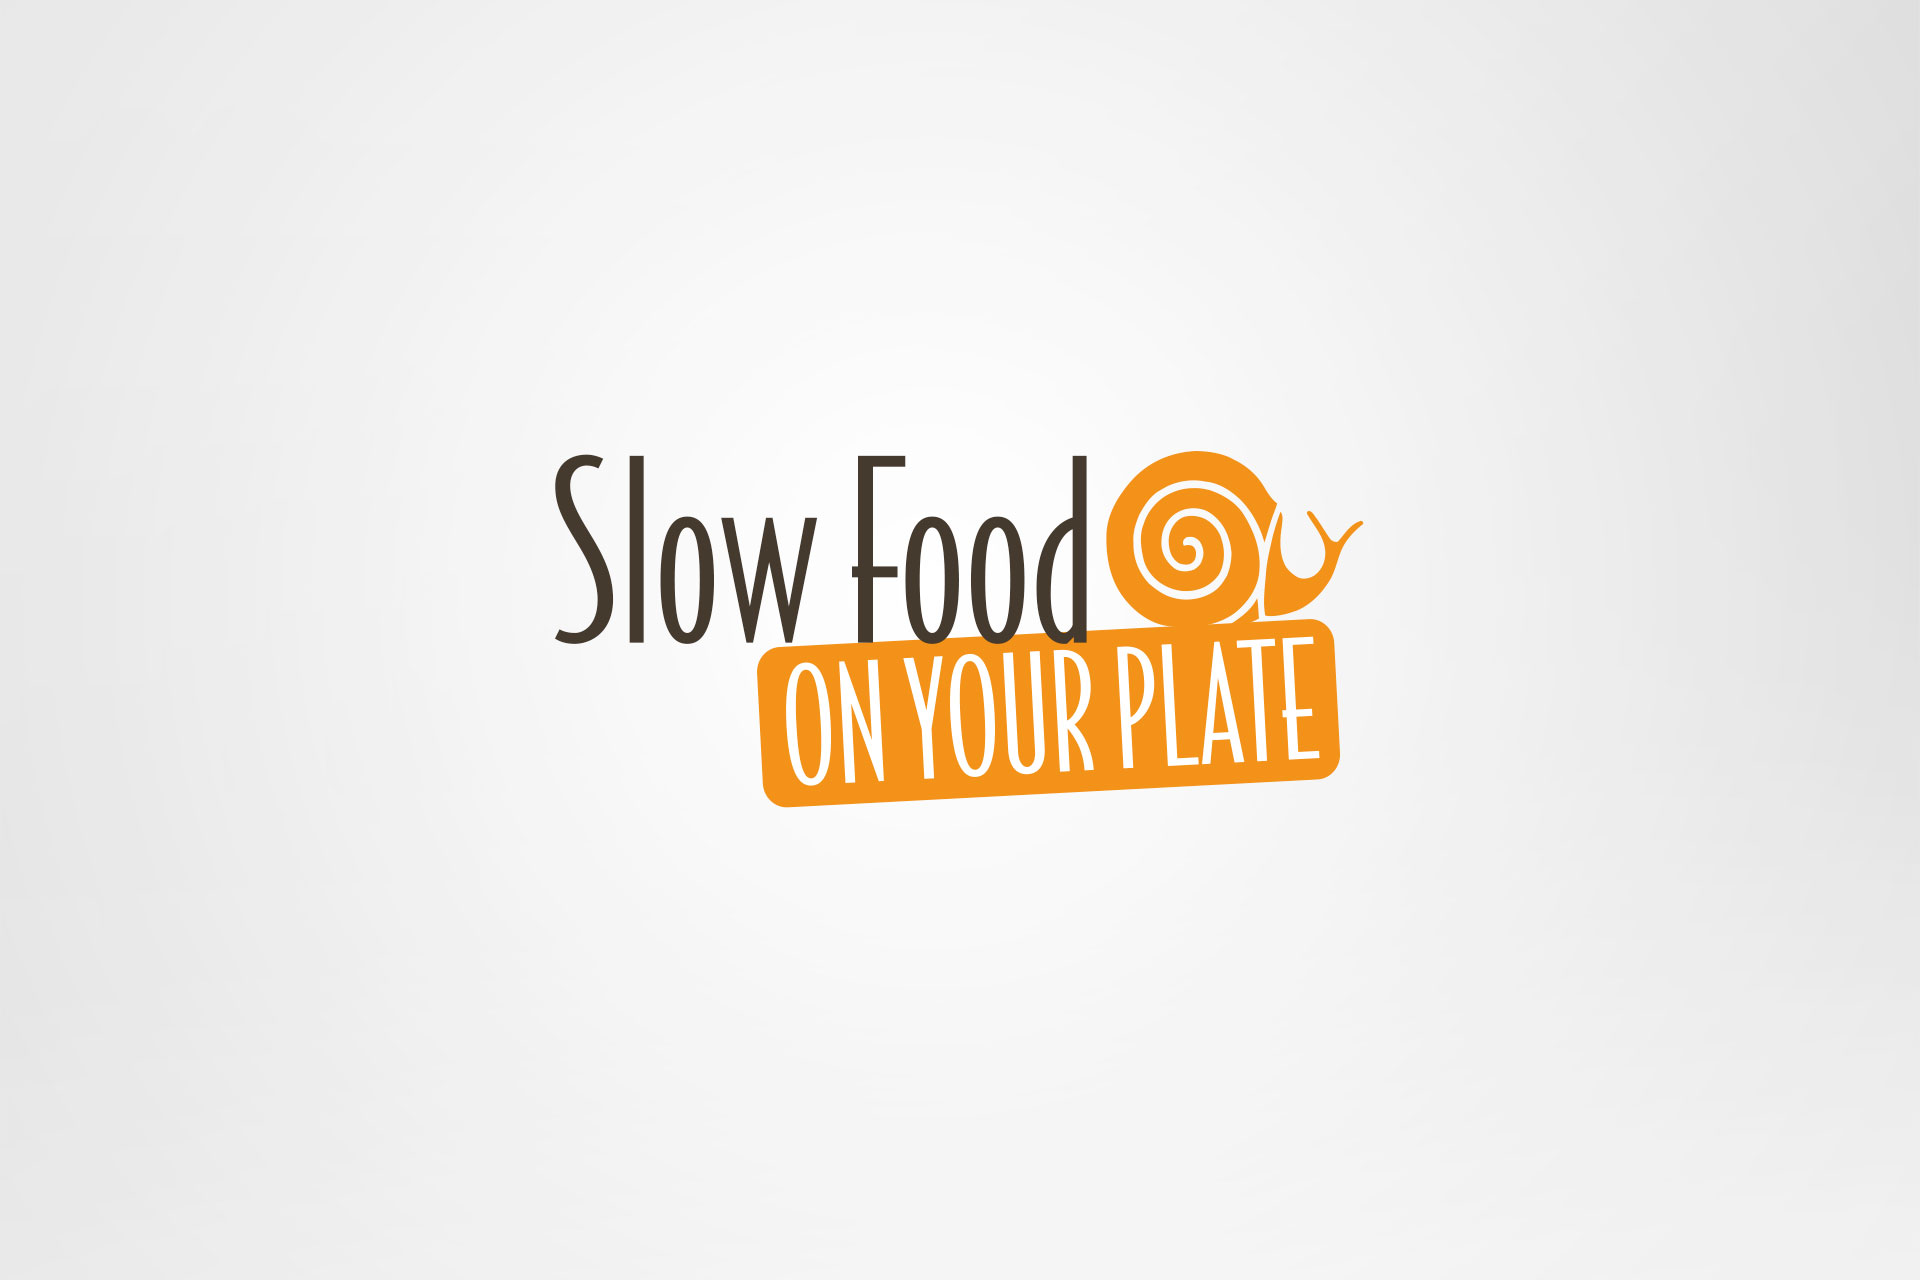 Slow Food on your plate